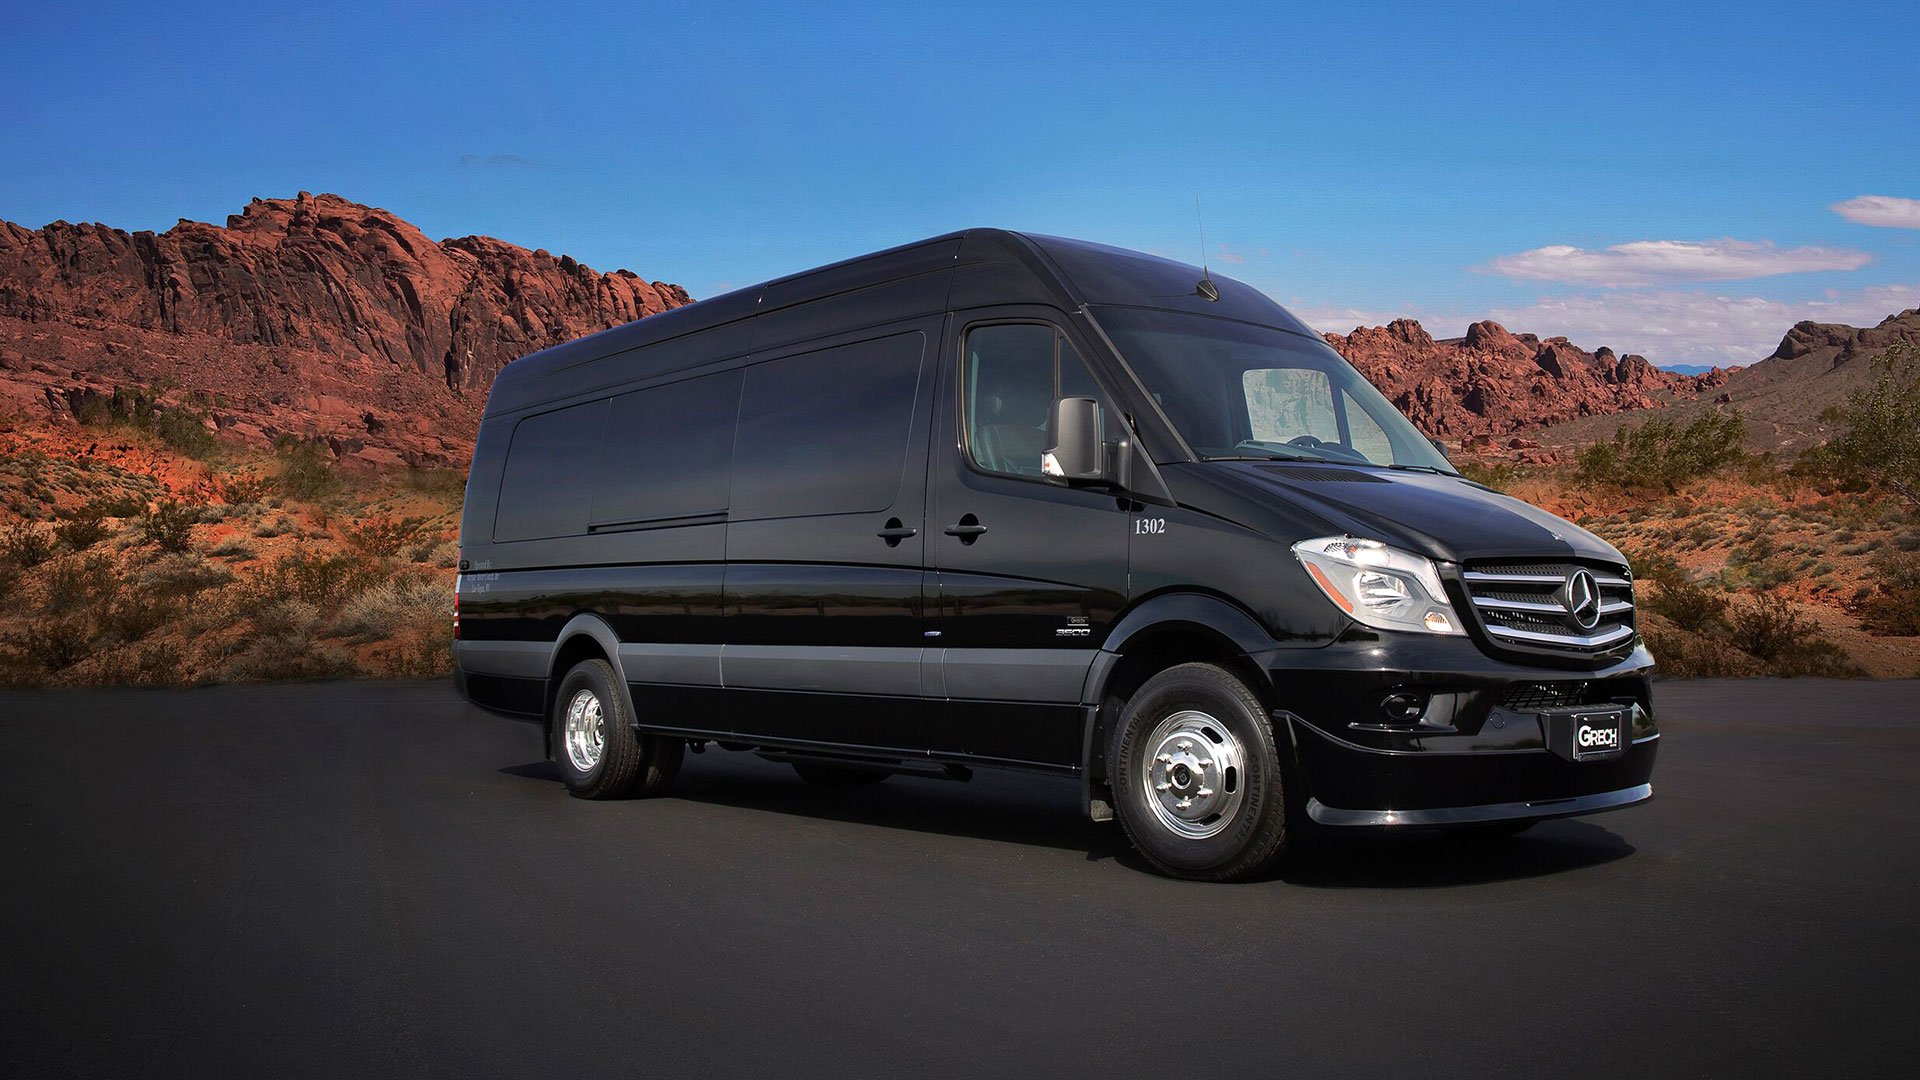 A Sprinter tour van in front of the Nevada Red Rock Canyon.